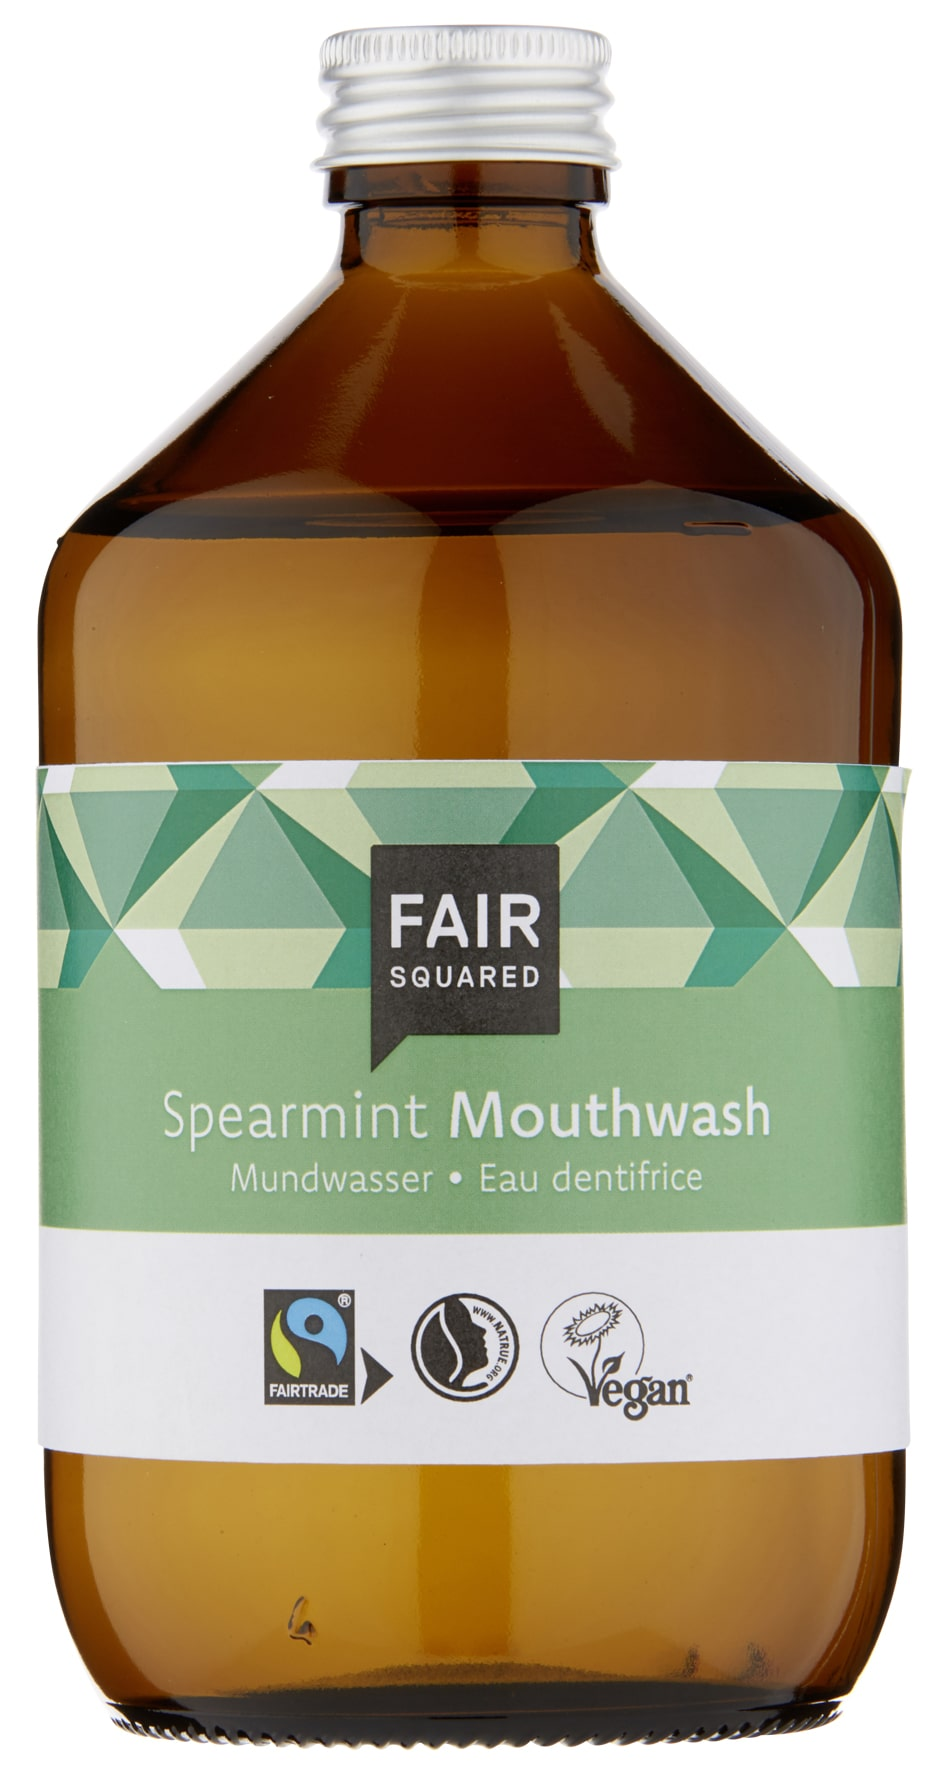 Spearmint Mouthwash